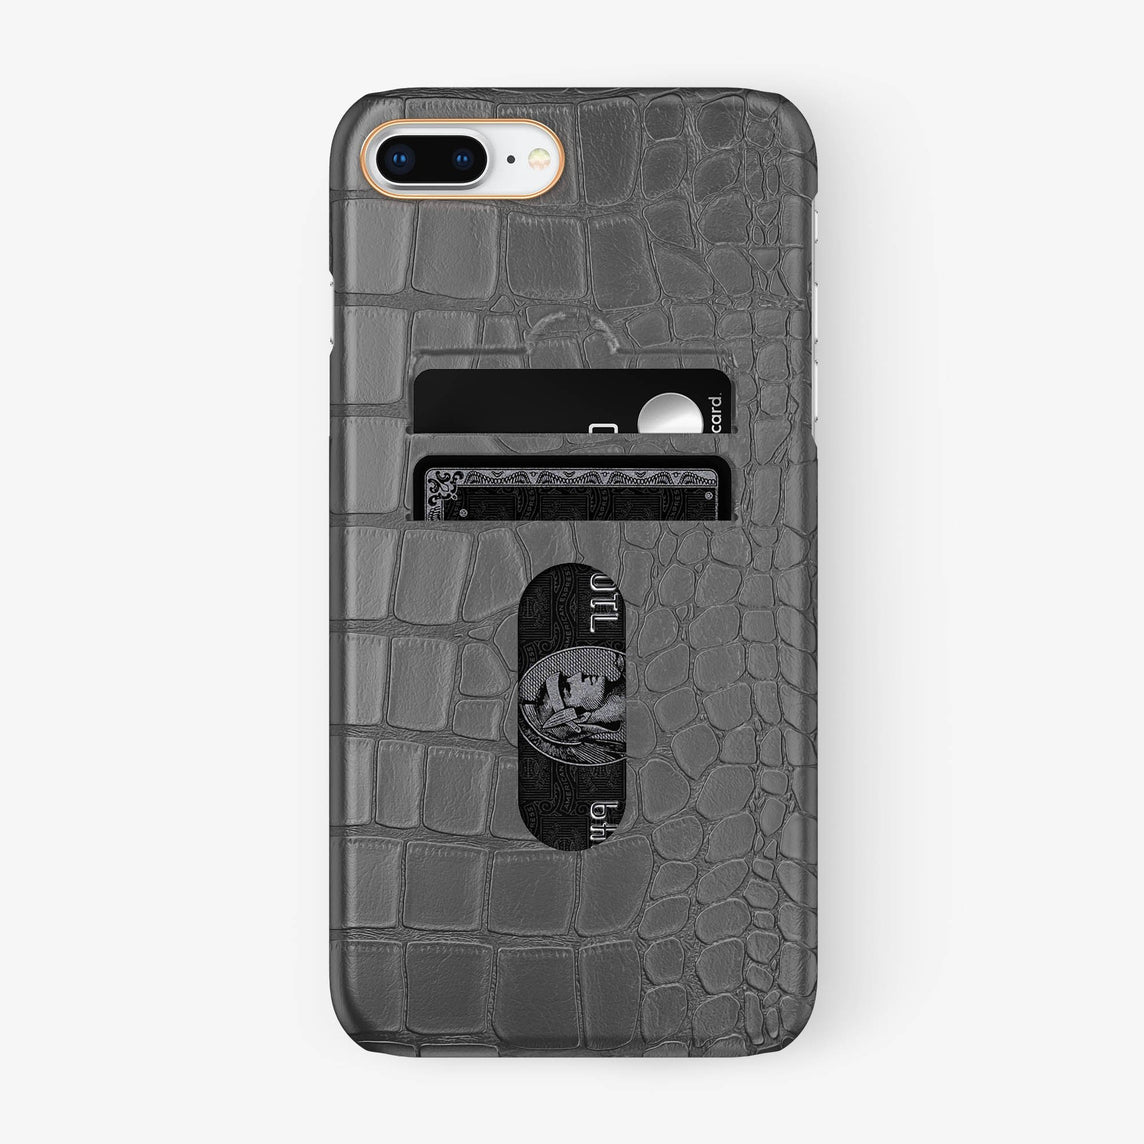 Alligator Card Holder Case iPhone 7/8 Plus | Grey - Rose Gold - Hadoro